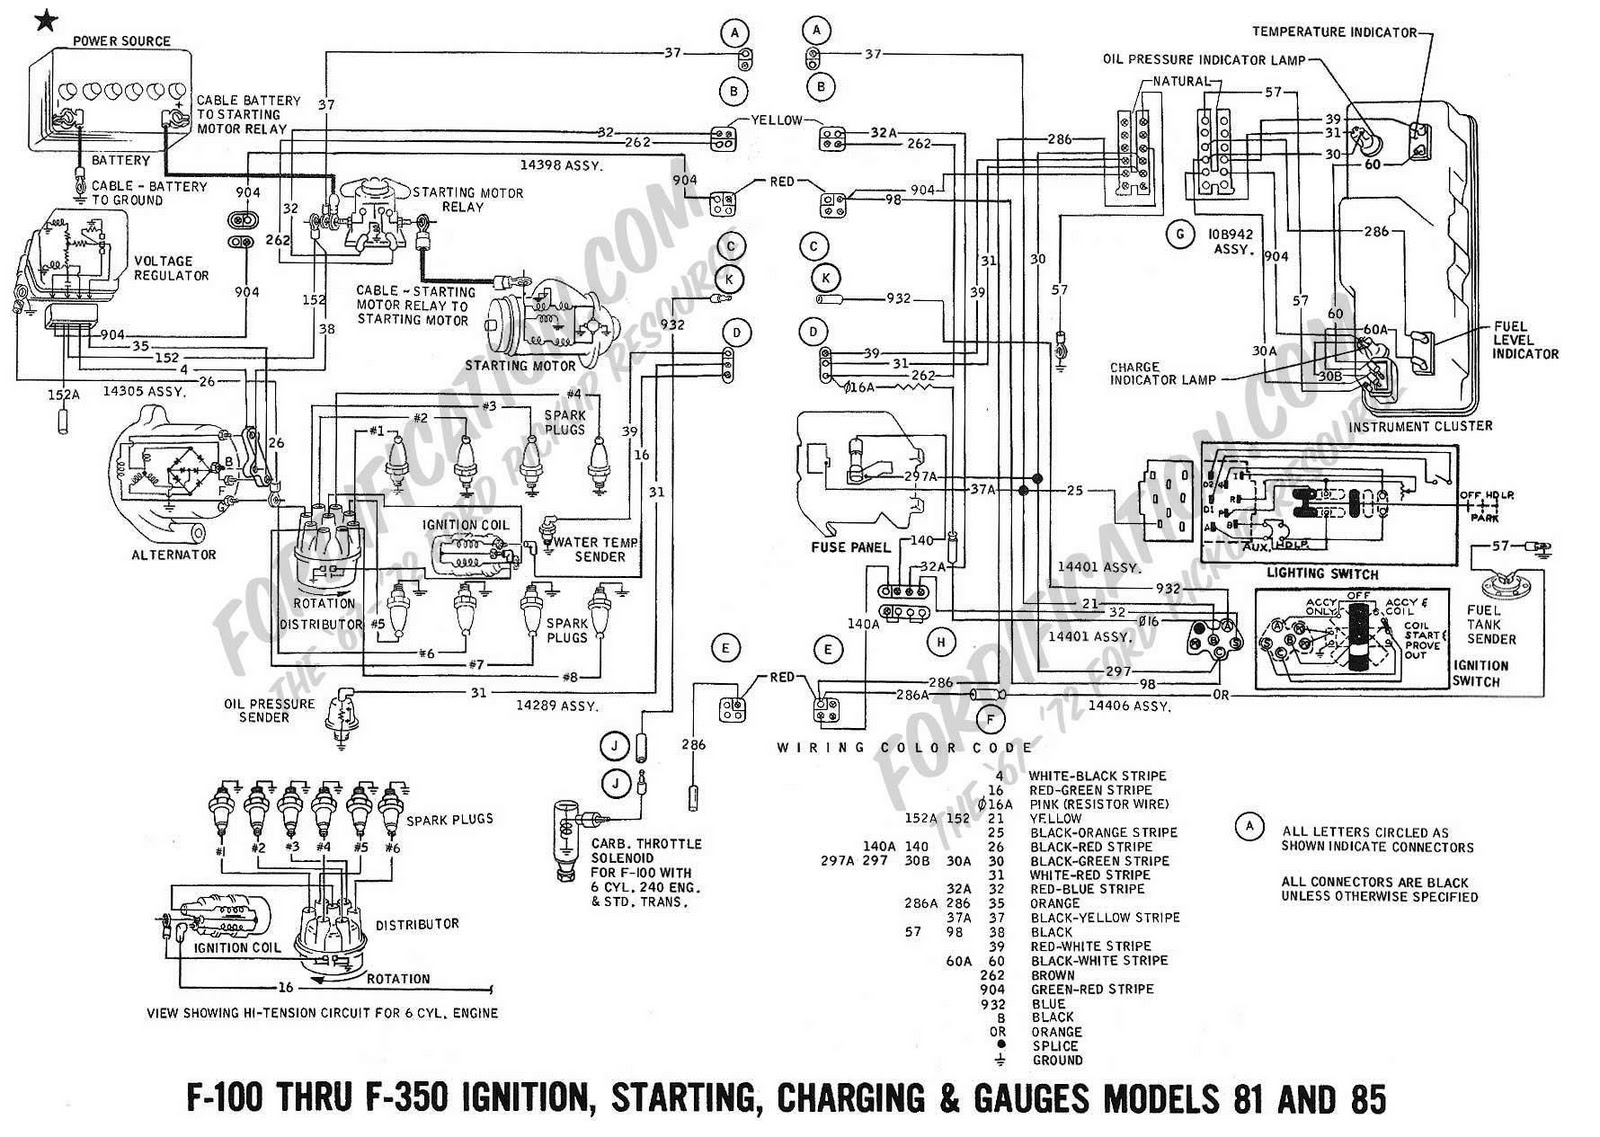 1968 galaxie wiring diagram wiring diagram schematics 1977 jeep cj7 wiring diagram 1977 ford ltd wiring [ 1600 x 1137 Pixel ]